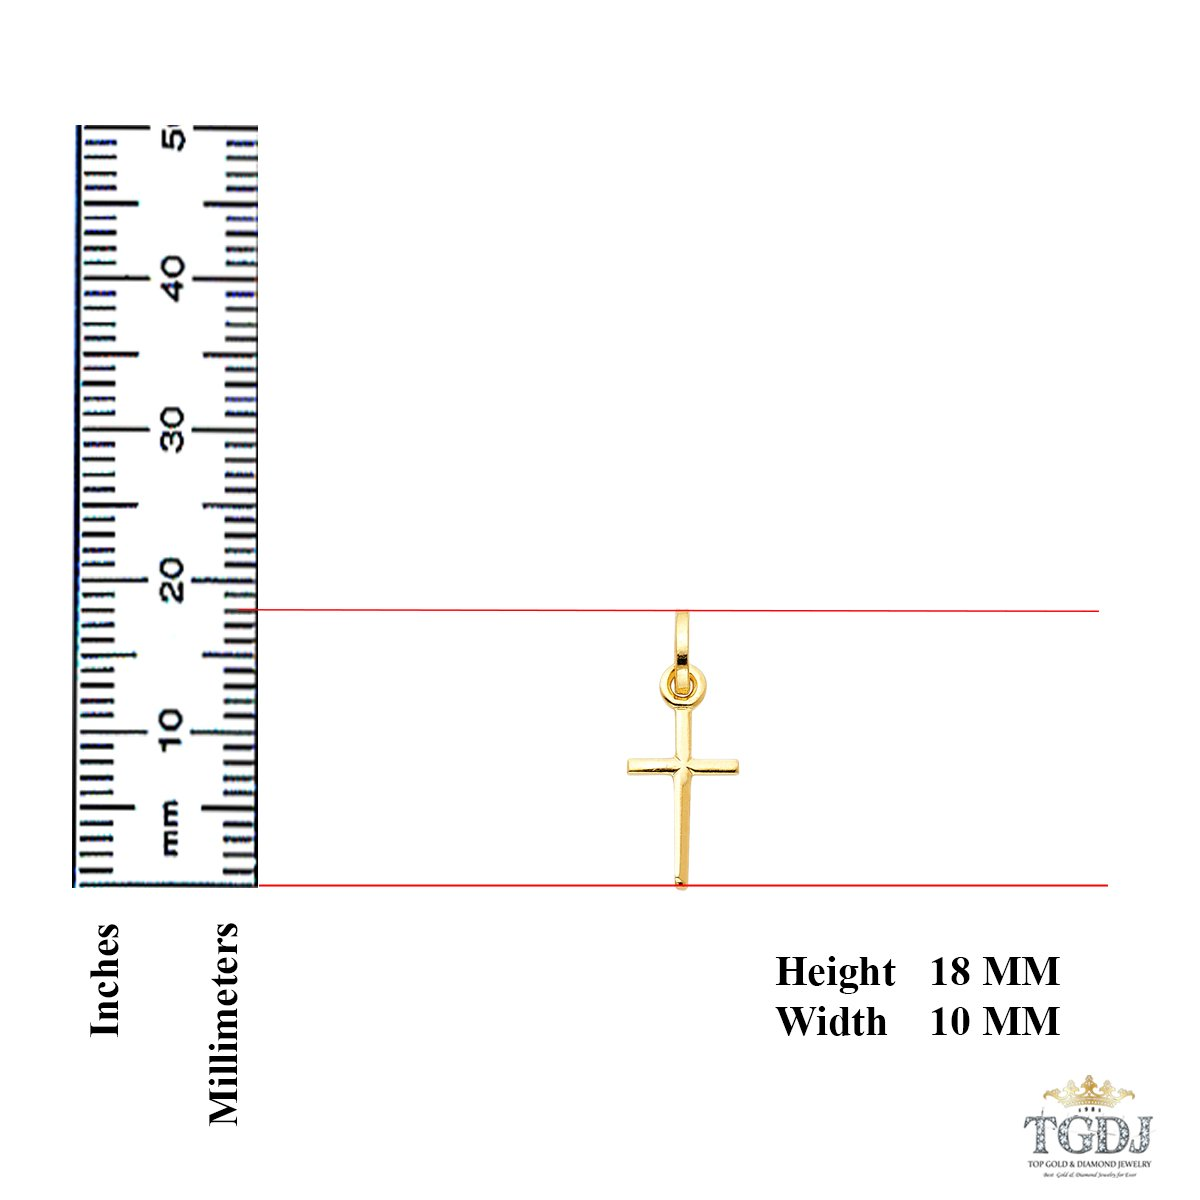 Fine Jewelry for Men /& Women Religious Charm Pendant 18 x 10 mm 0.6 Grams Ideal Gift for Birthday Christmas /& All Occasions Easter 14K Yellow Gold Tiny Cross Pendant High Polished Finish